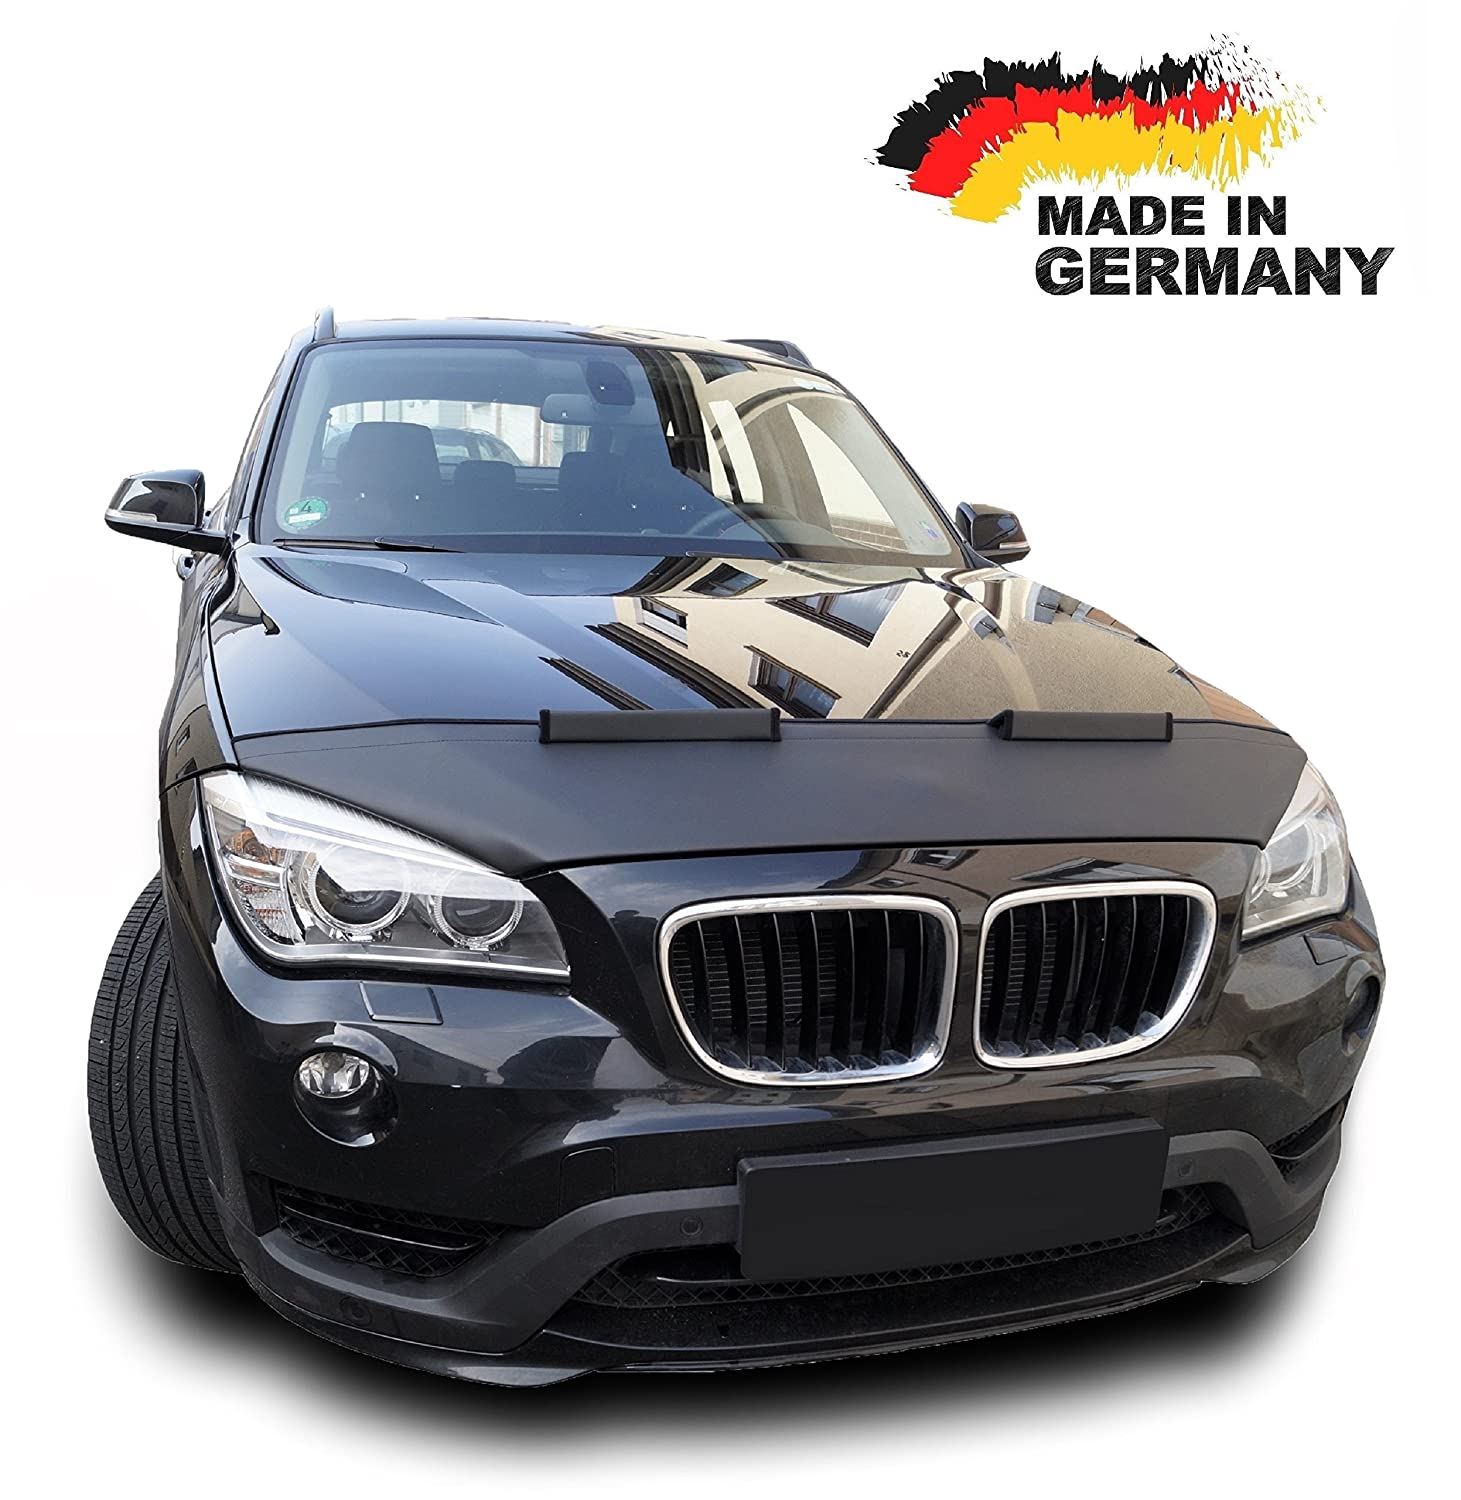 Hood Bra for BMW X1 E84 Bonnet Car Bra Front End Cover Nose Mask Stoneguard Protector TUNING Autosattlerei Roganov